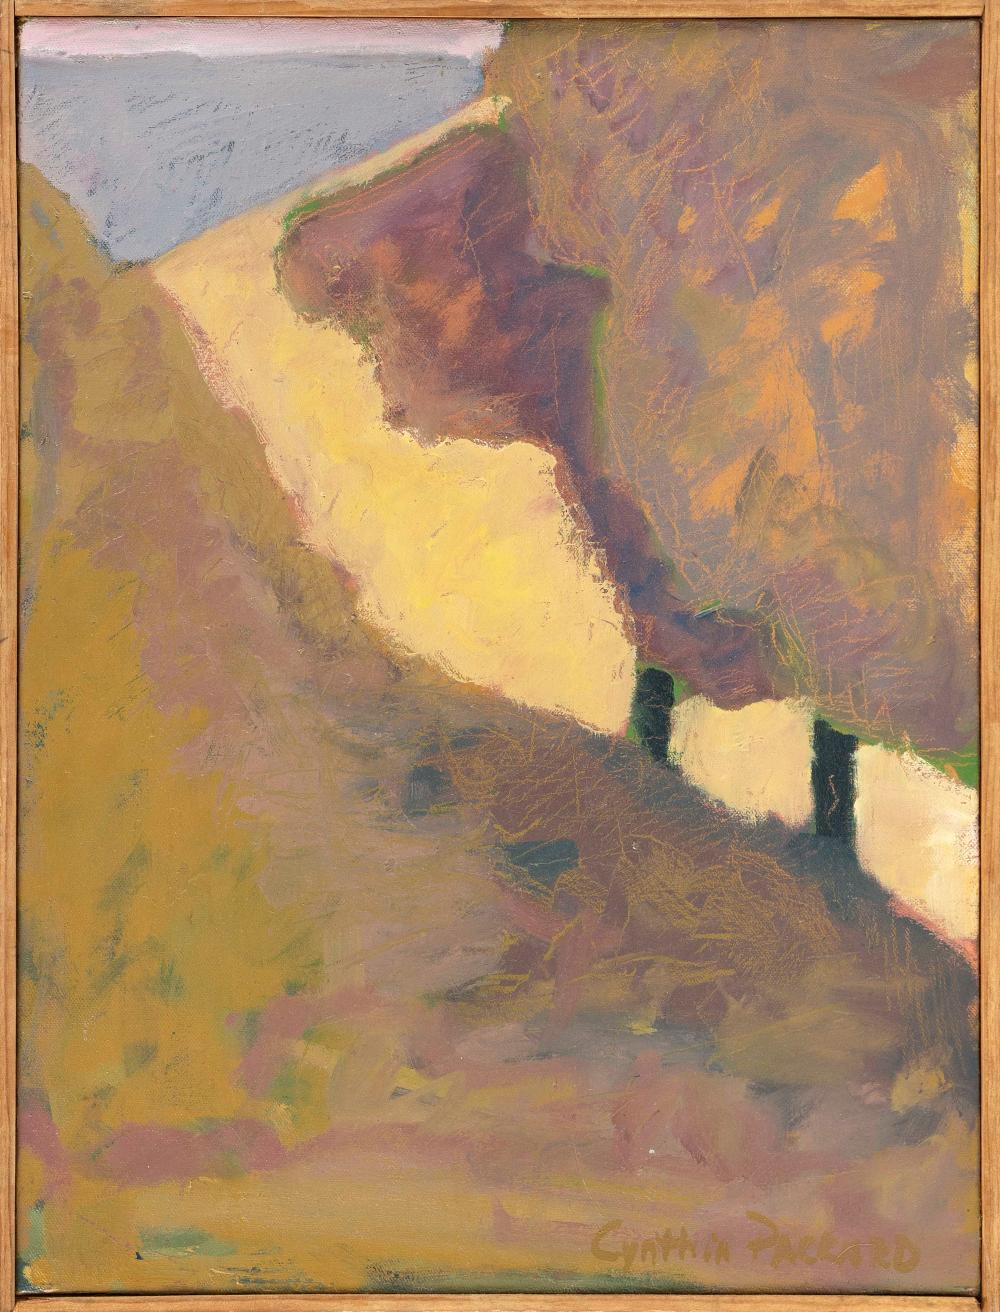 """CYNTHIA PACKARD , Massachusetts/Florida, b. 1957, """"Yellow Field""""., Signed lower right """"Cynthia Packard""""., Oil on canvas, 14"""" x 9"""". Framed 14.5"""" x 9.5""""."""